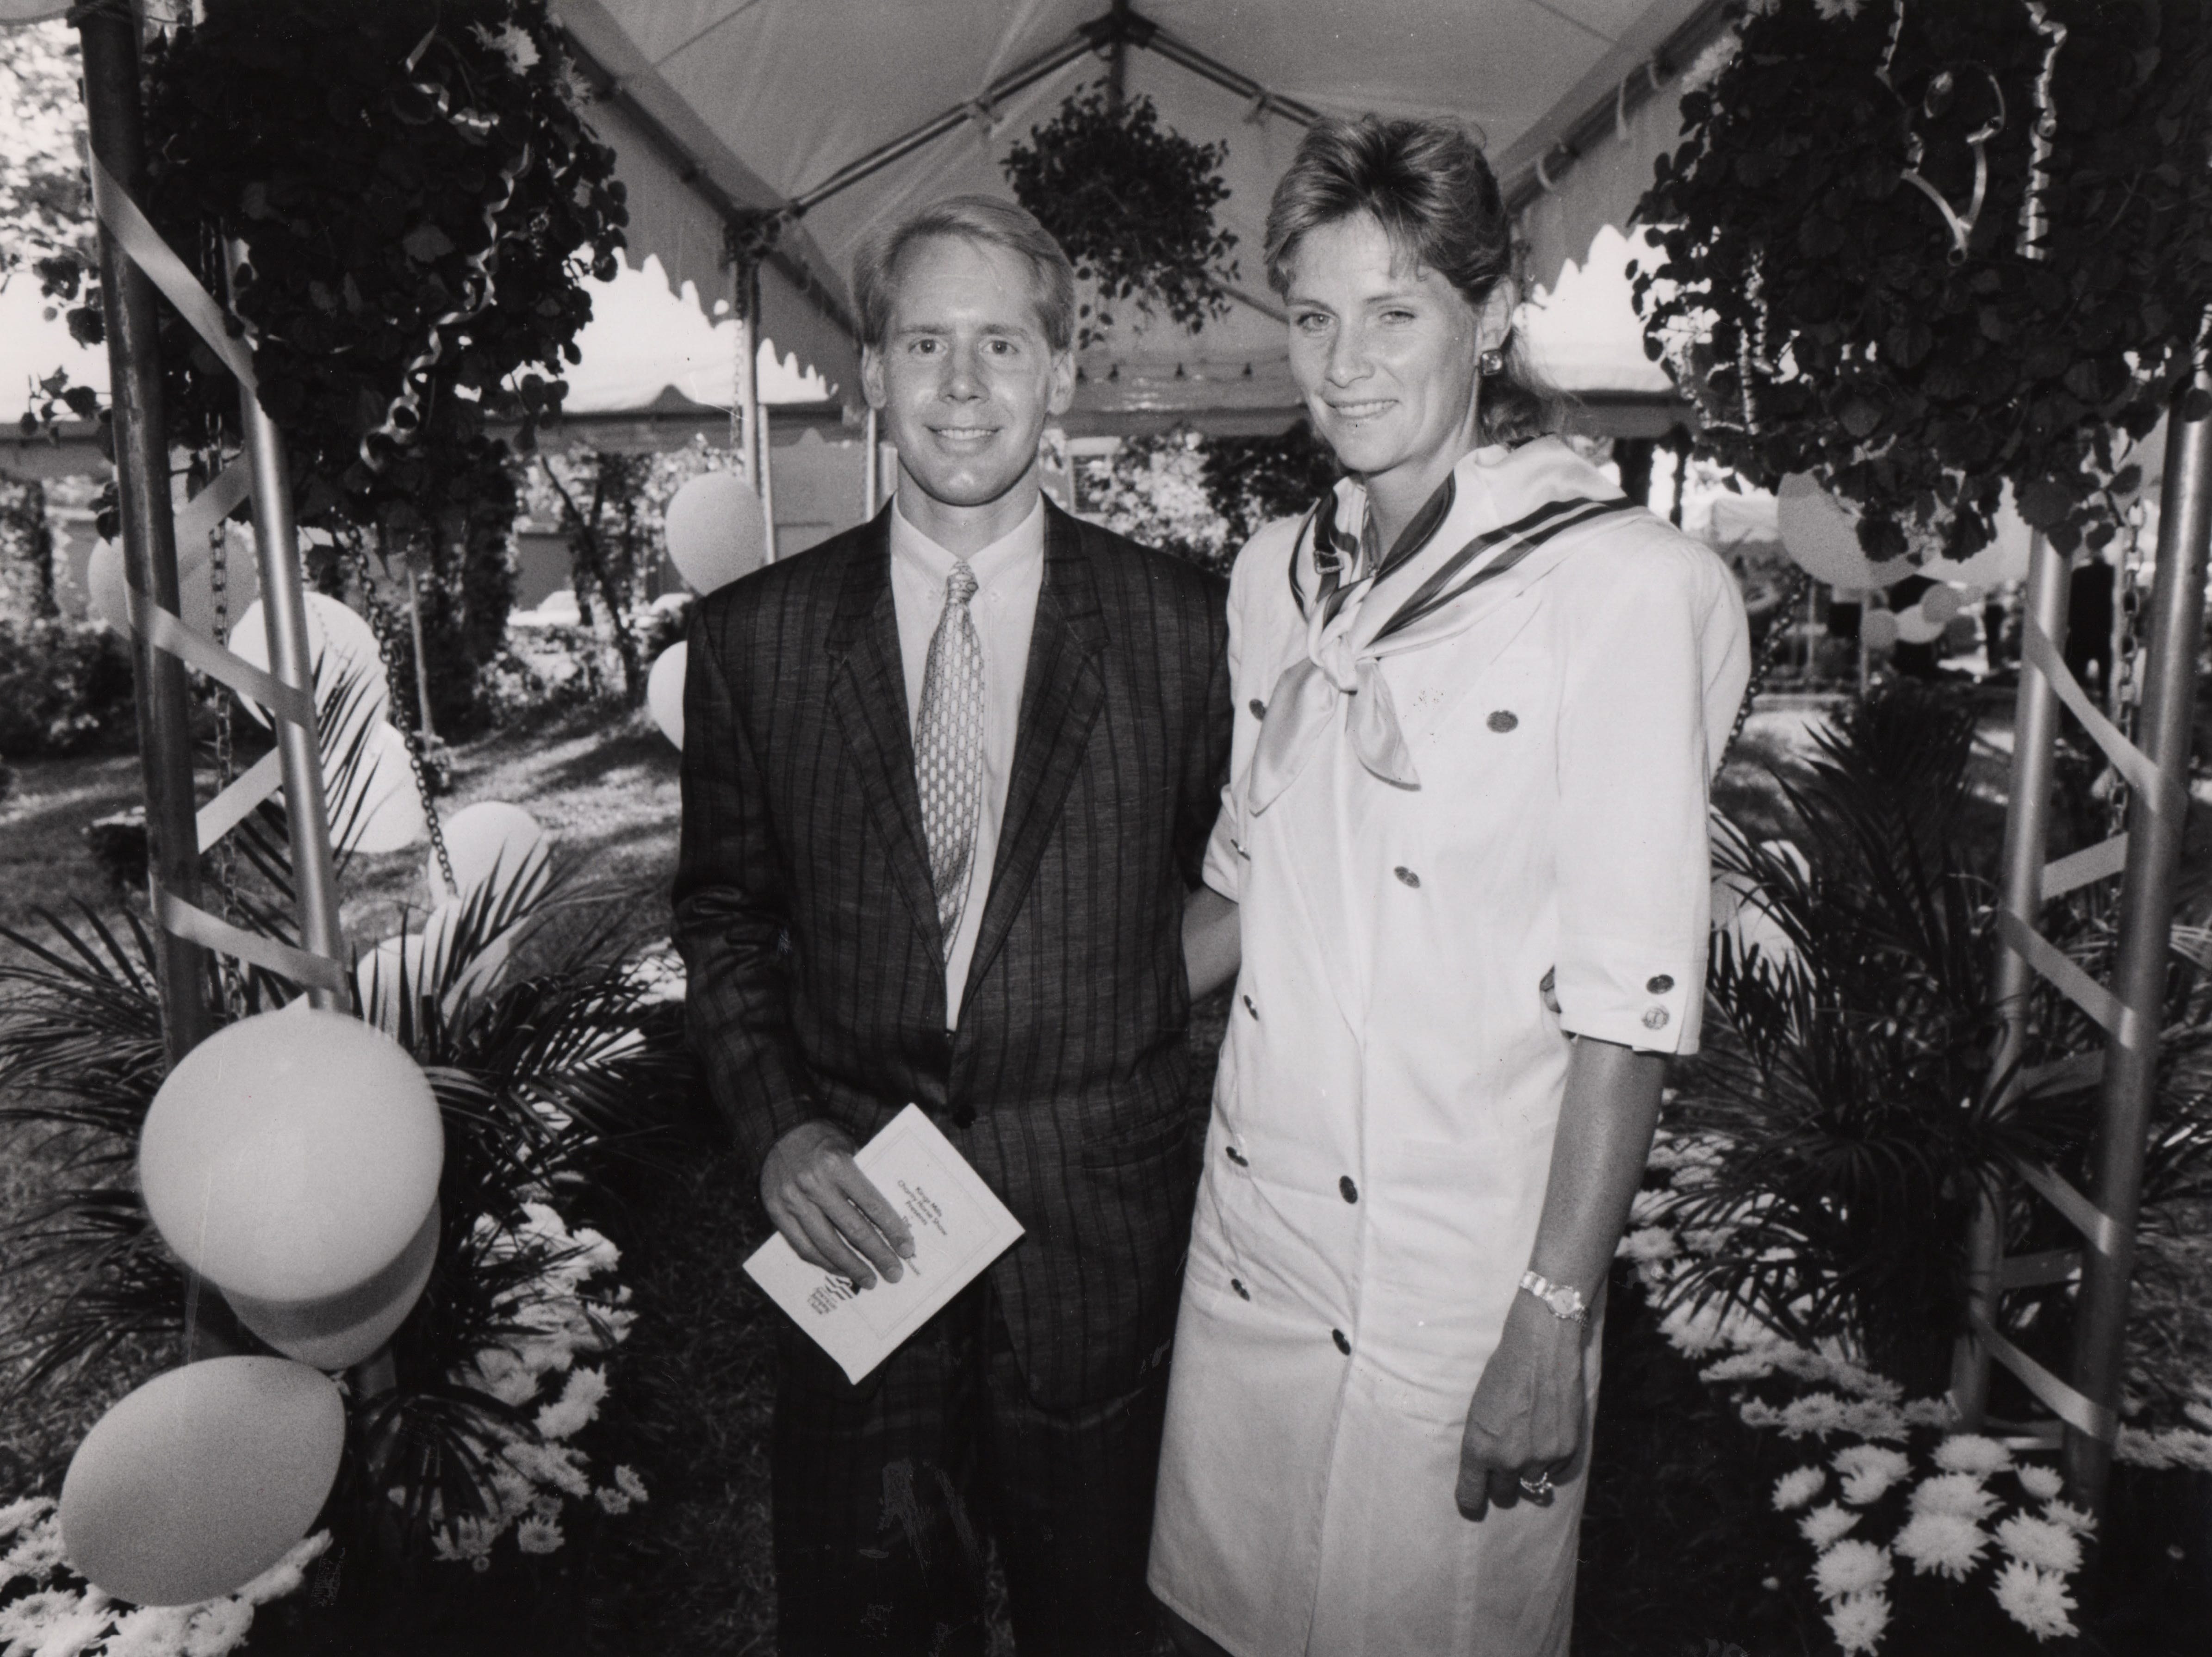 Chairman of the American Jumping Classic Carl Lindner III and his wife, Martha, enjoy the party in 1988.